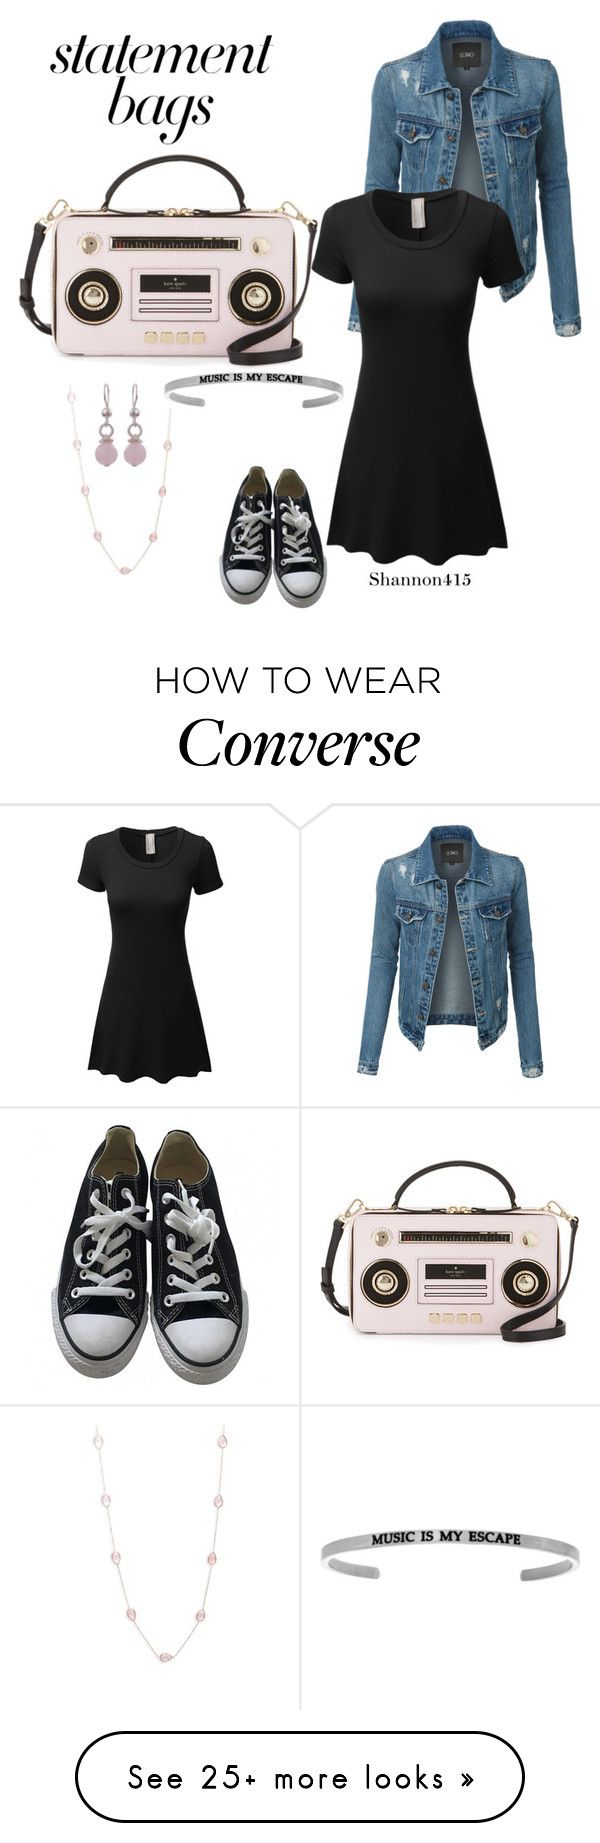 """Statement bags"" by shannon415 on Polyvore featuring Converse, Kate Spade, Saks Fifth Avenue, NOVICA, LE3NO and statementbags"